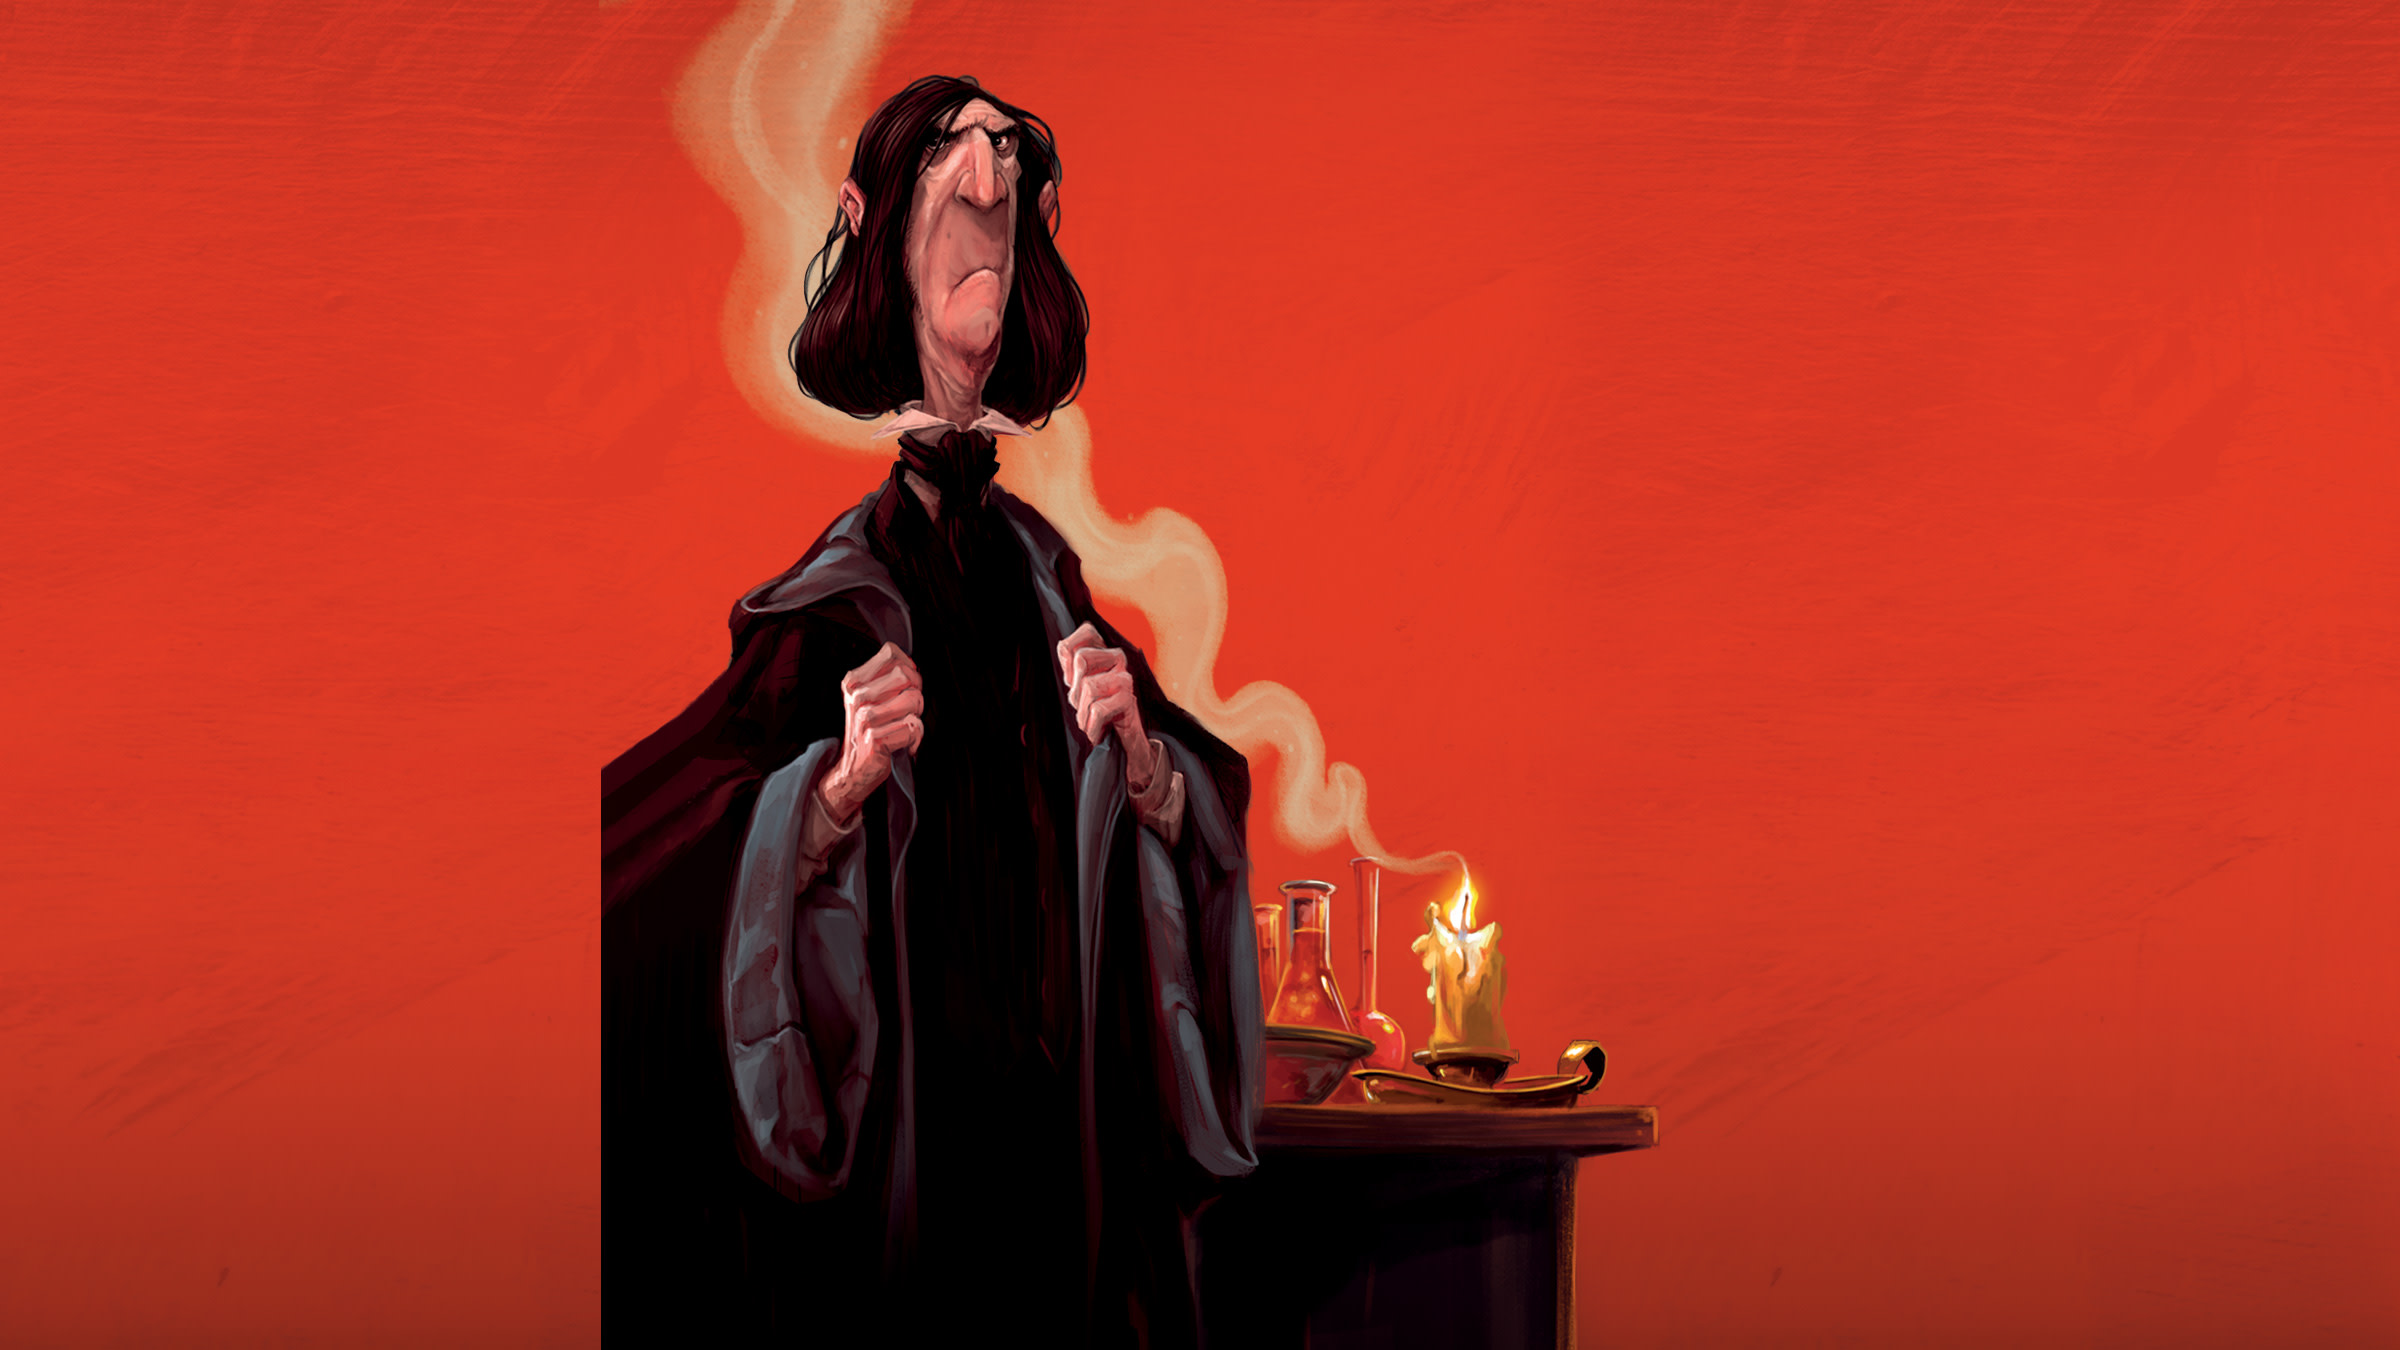 snape-illustration-candle-image